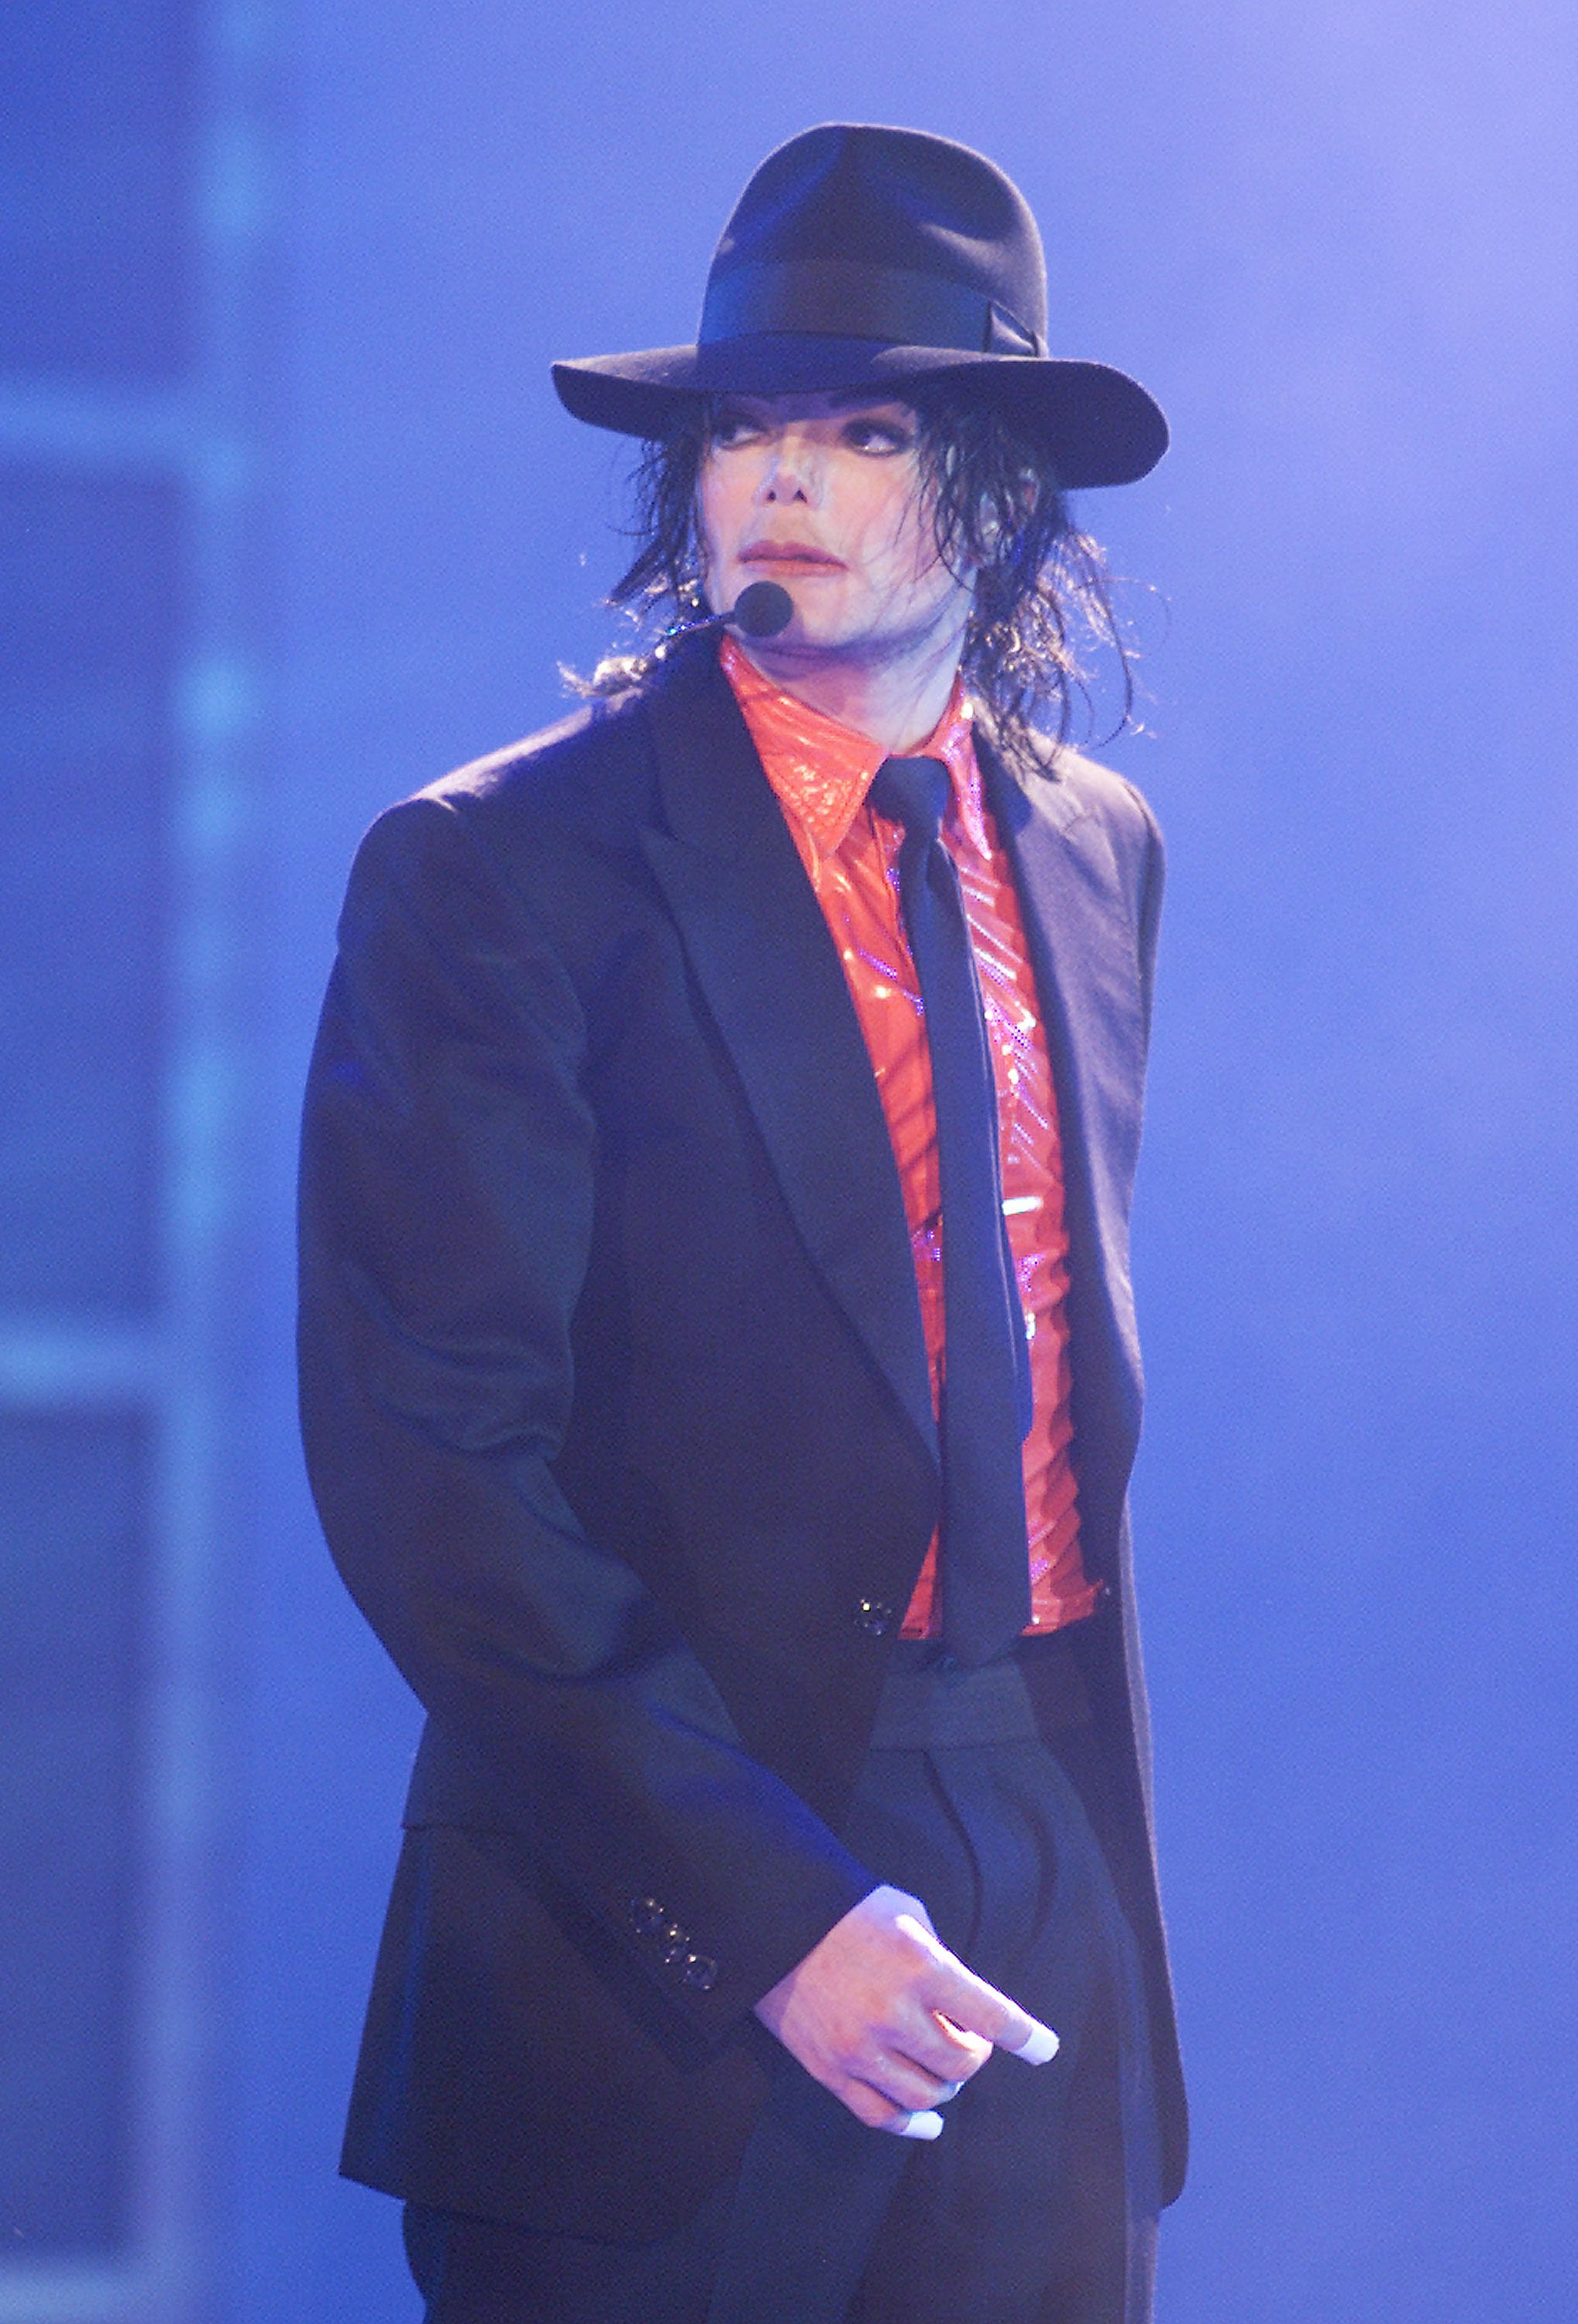 Michael Jackson, also known as the King of Pop during a performance in 2002. | Photo: Getty Images